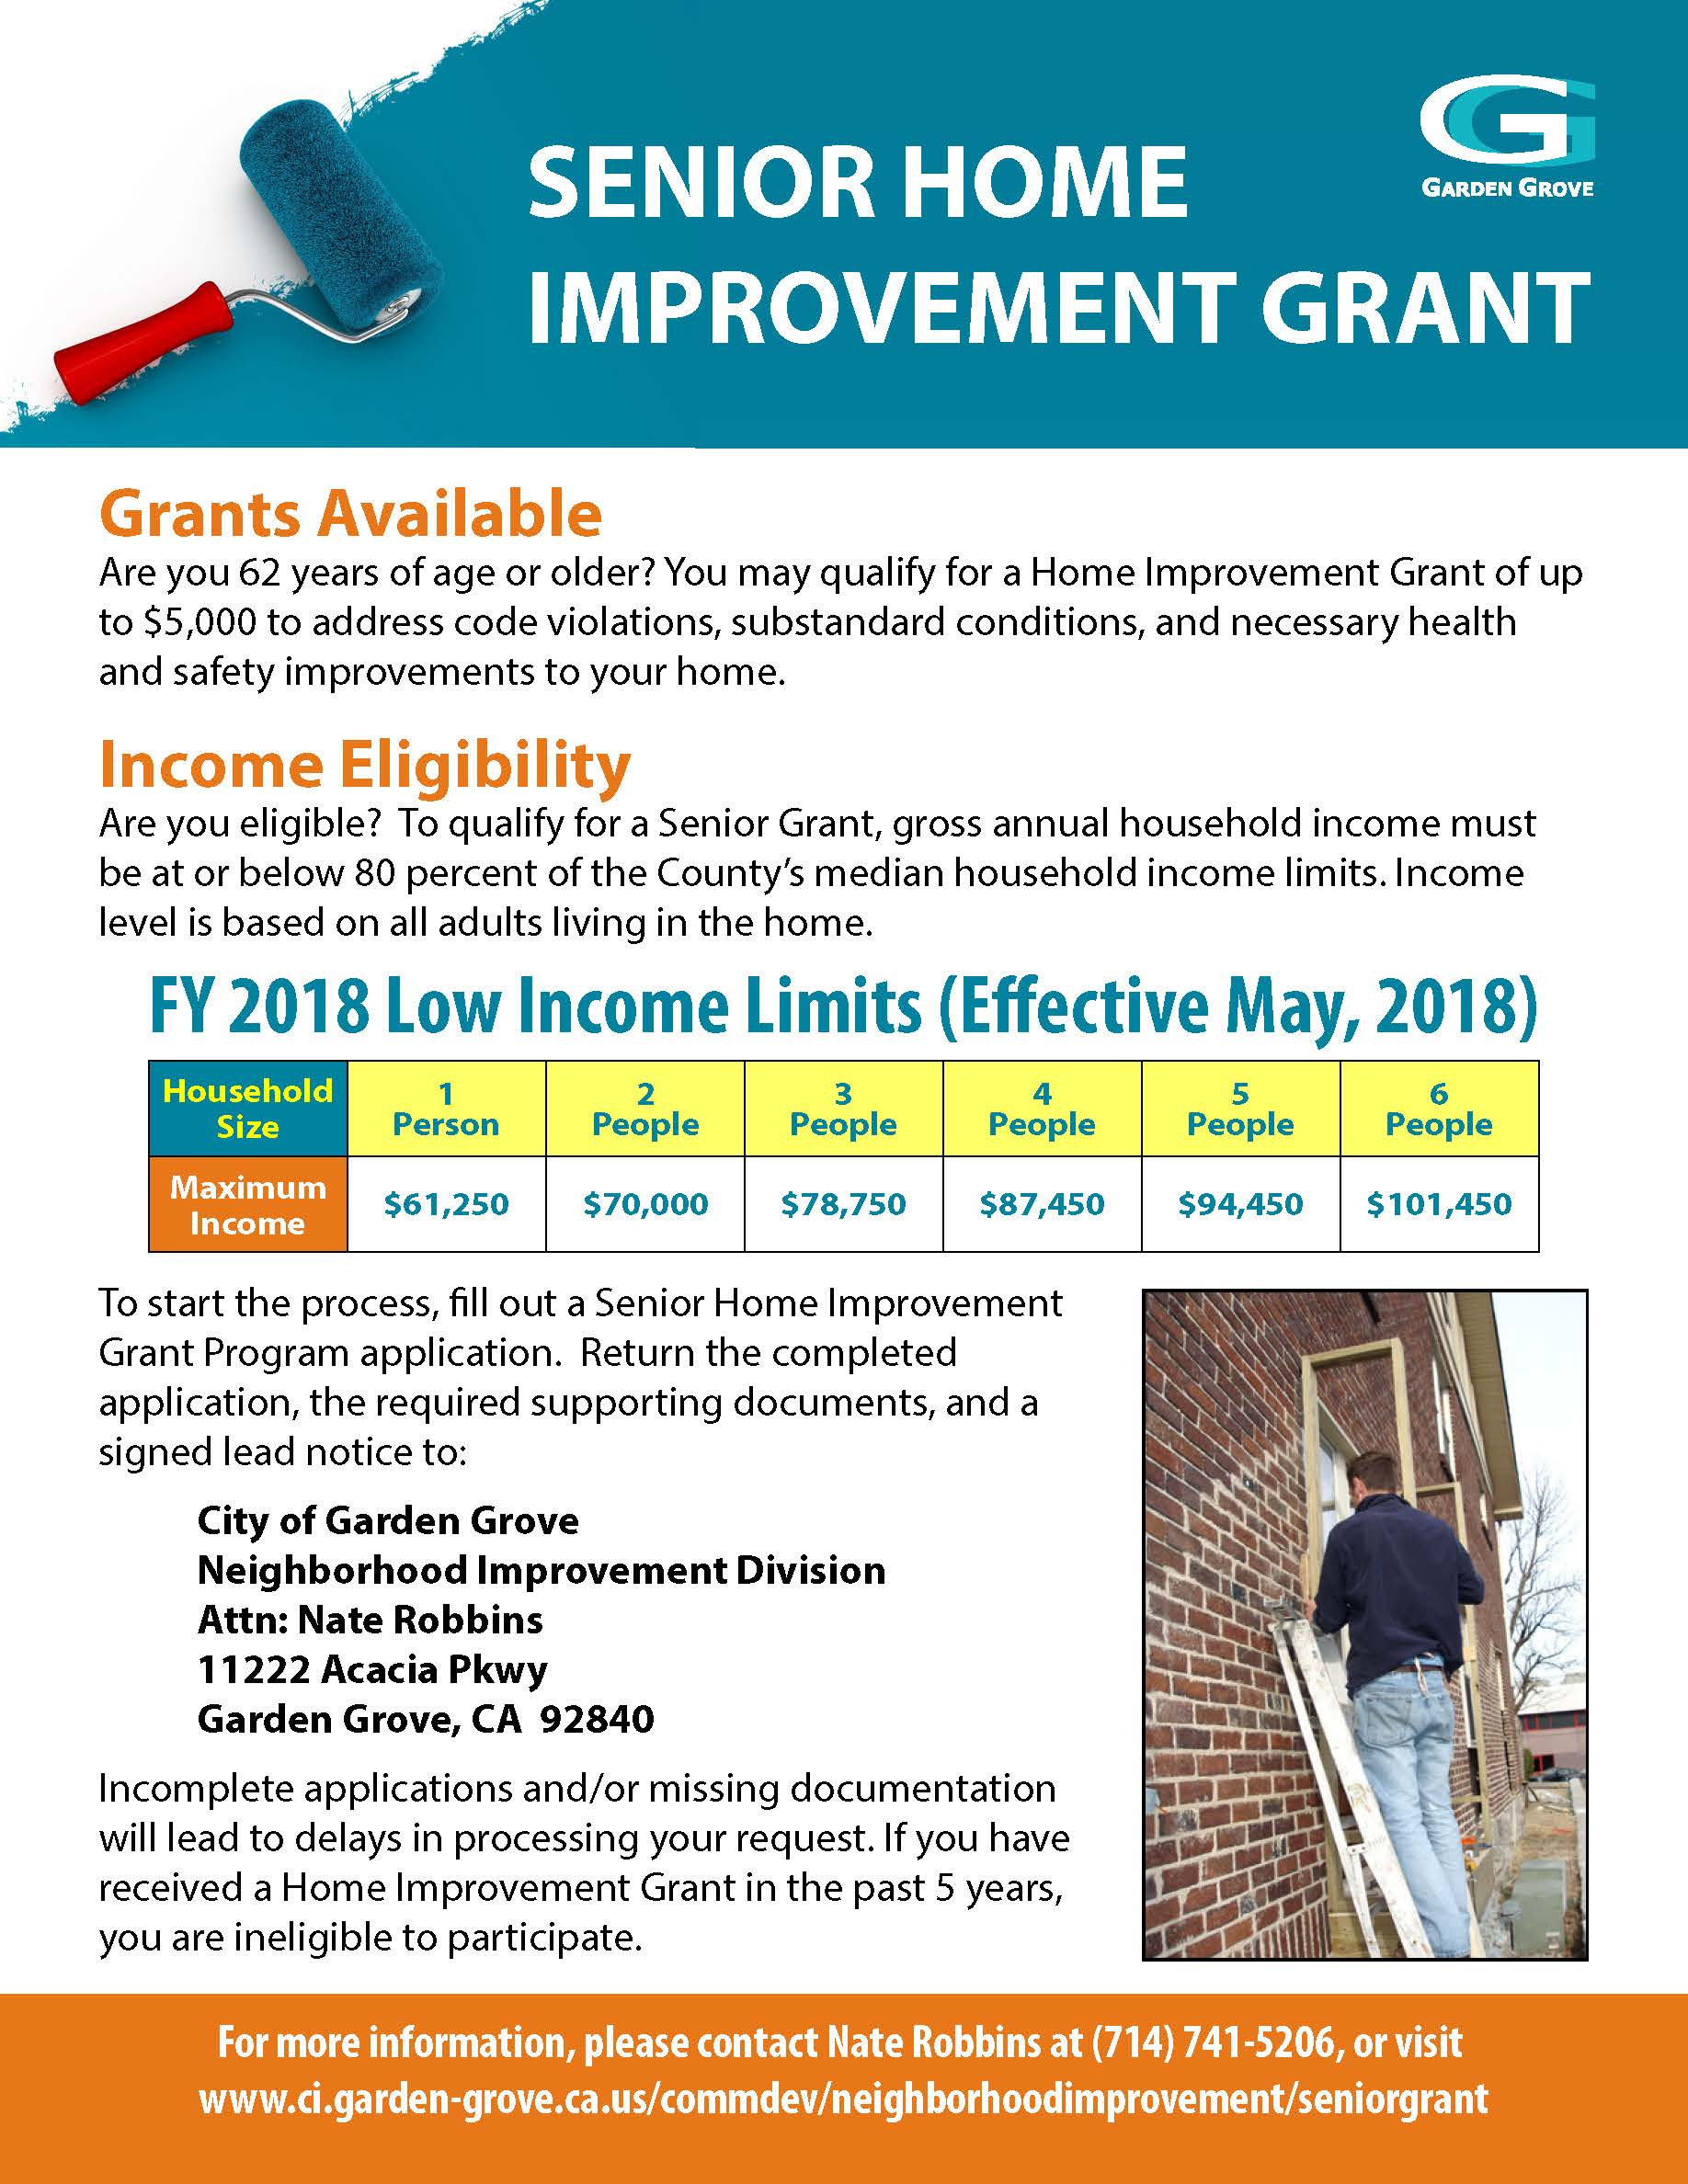 Image of the Senior Home Improvement Grant flyer